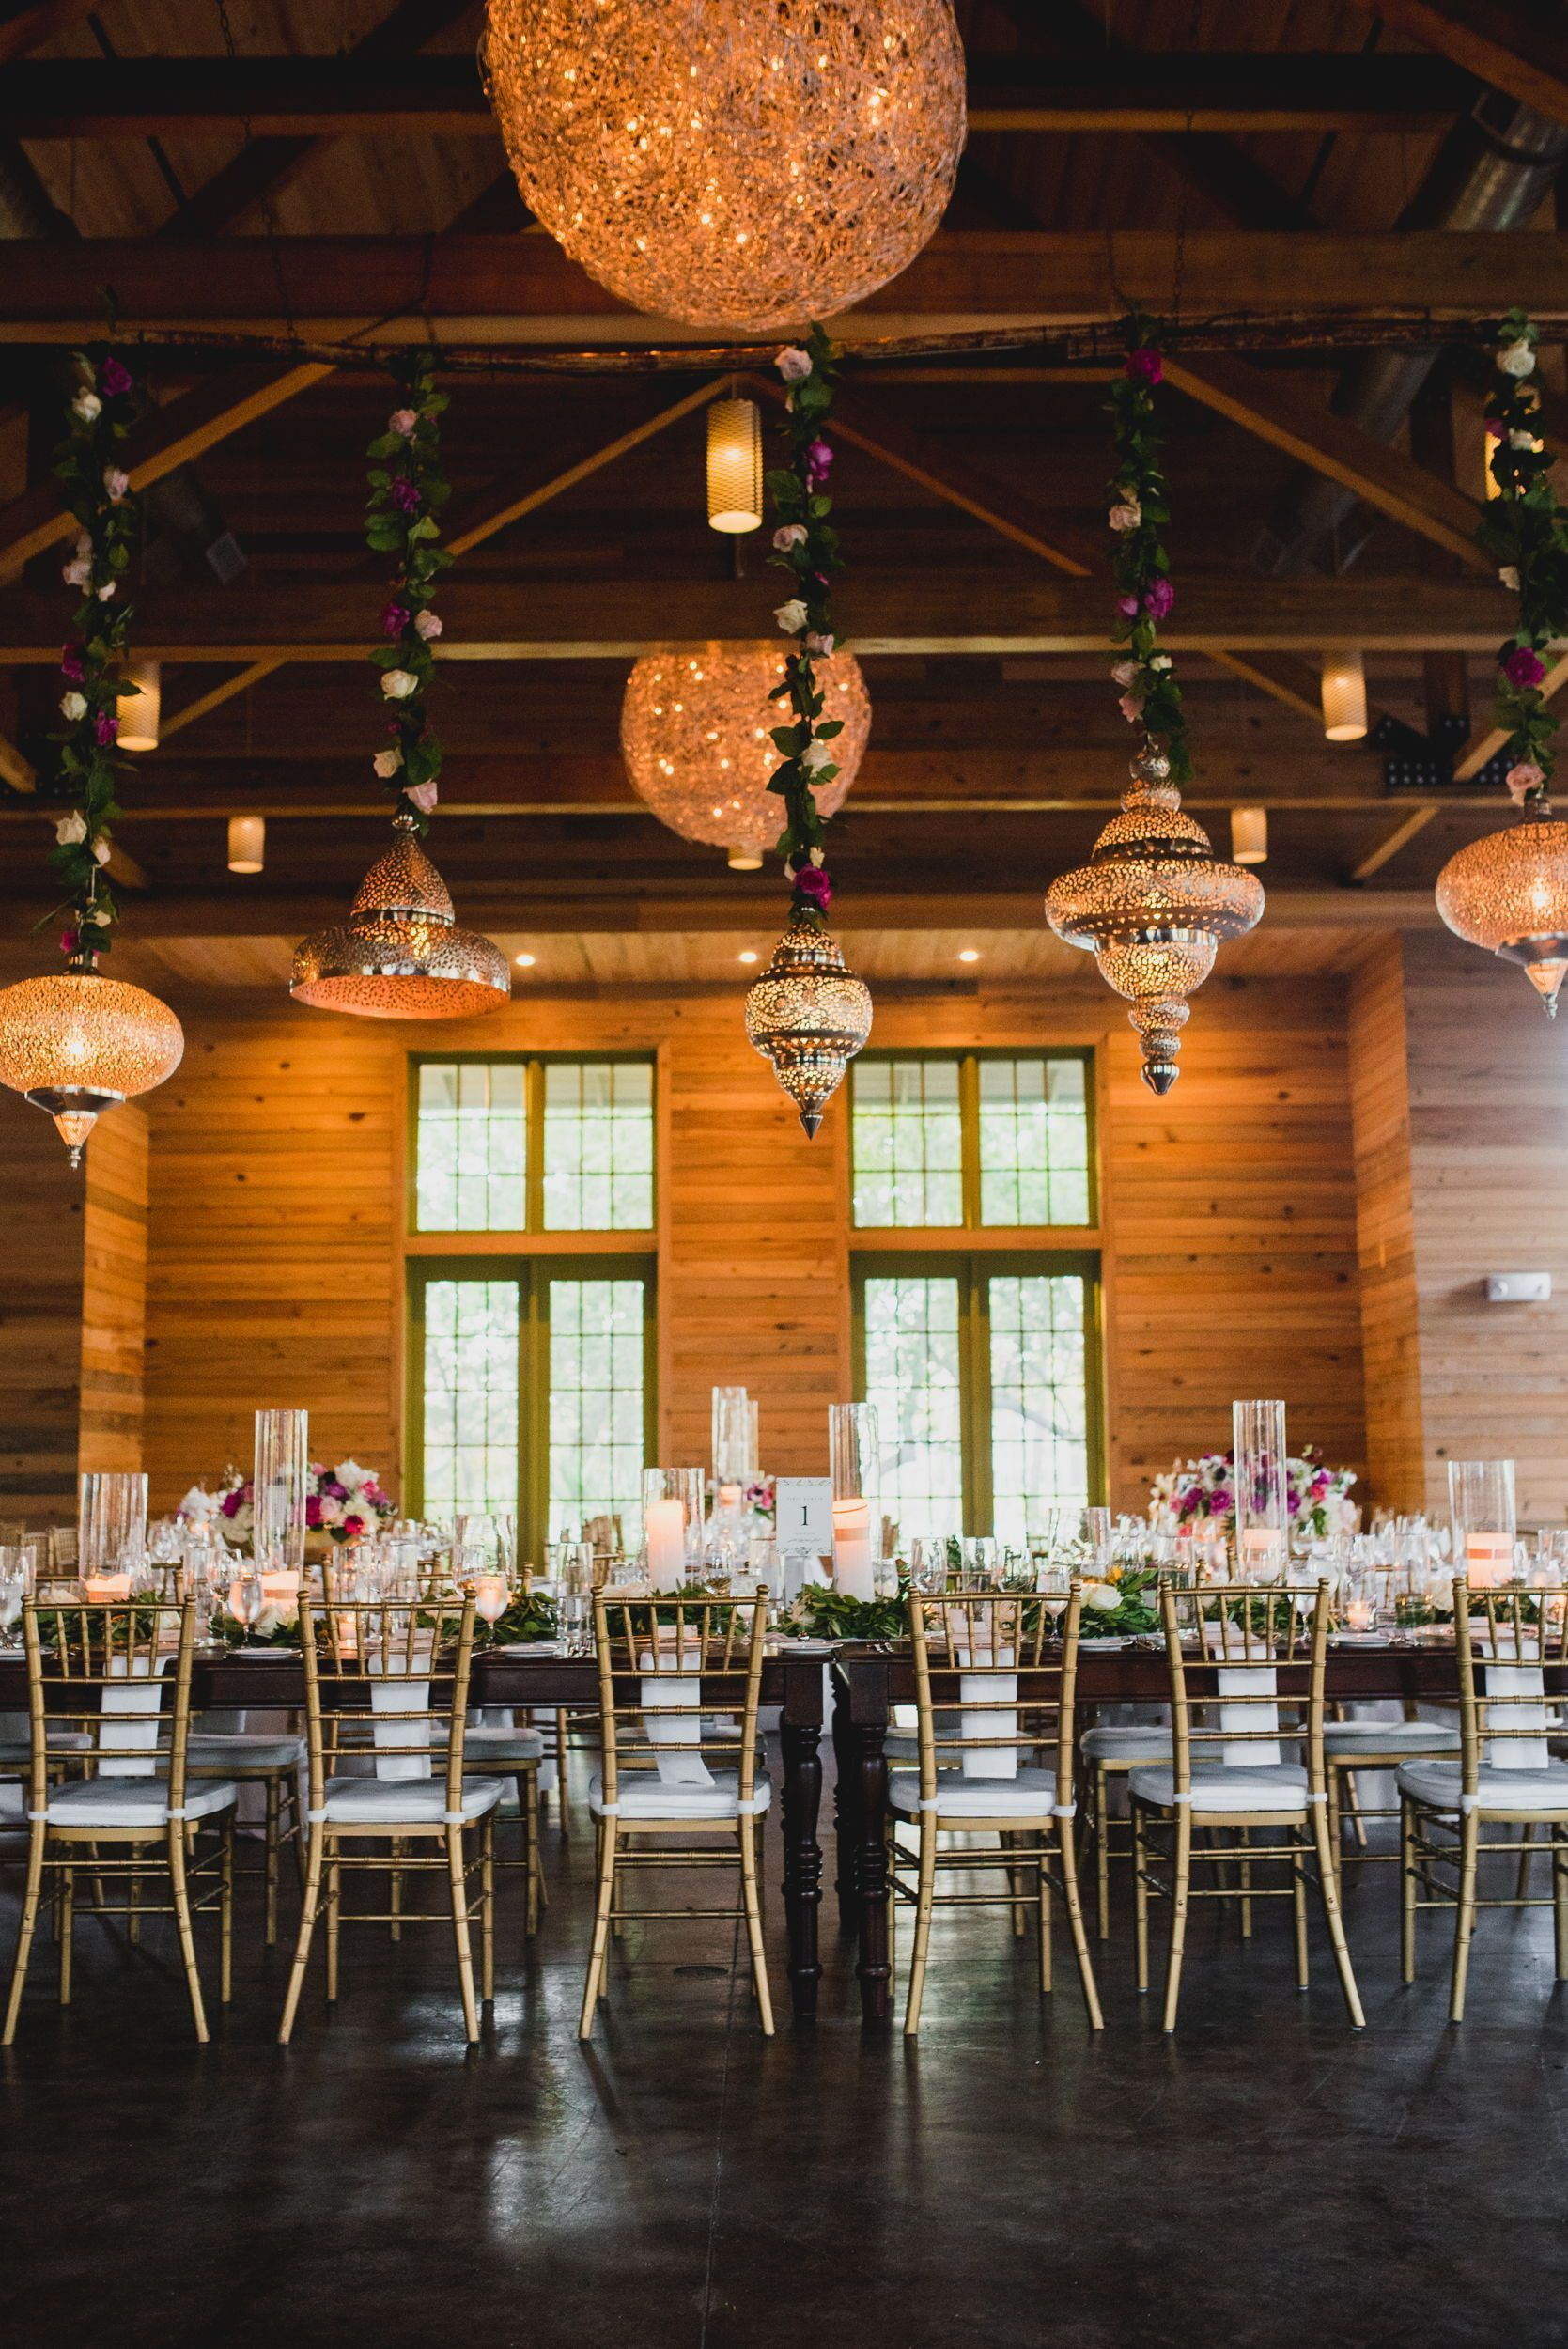 Classy boho chic wedding decor and lighting ideas Flower ropes